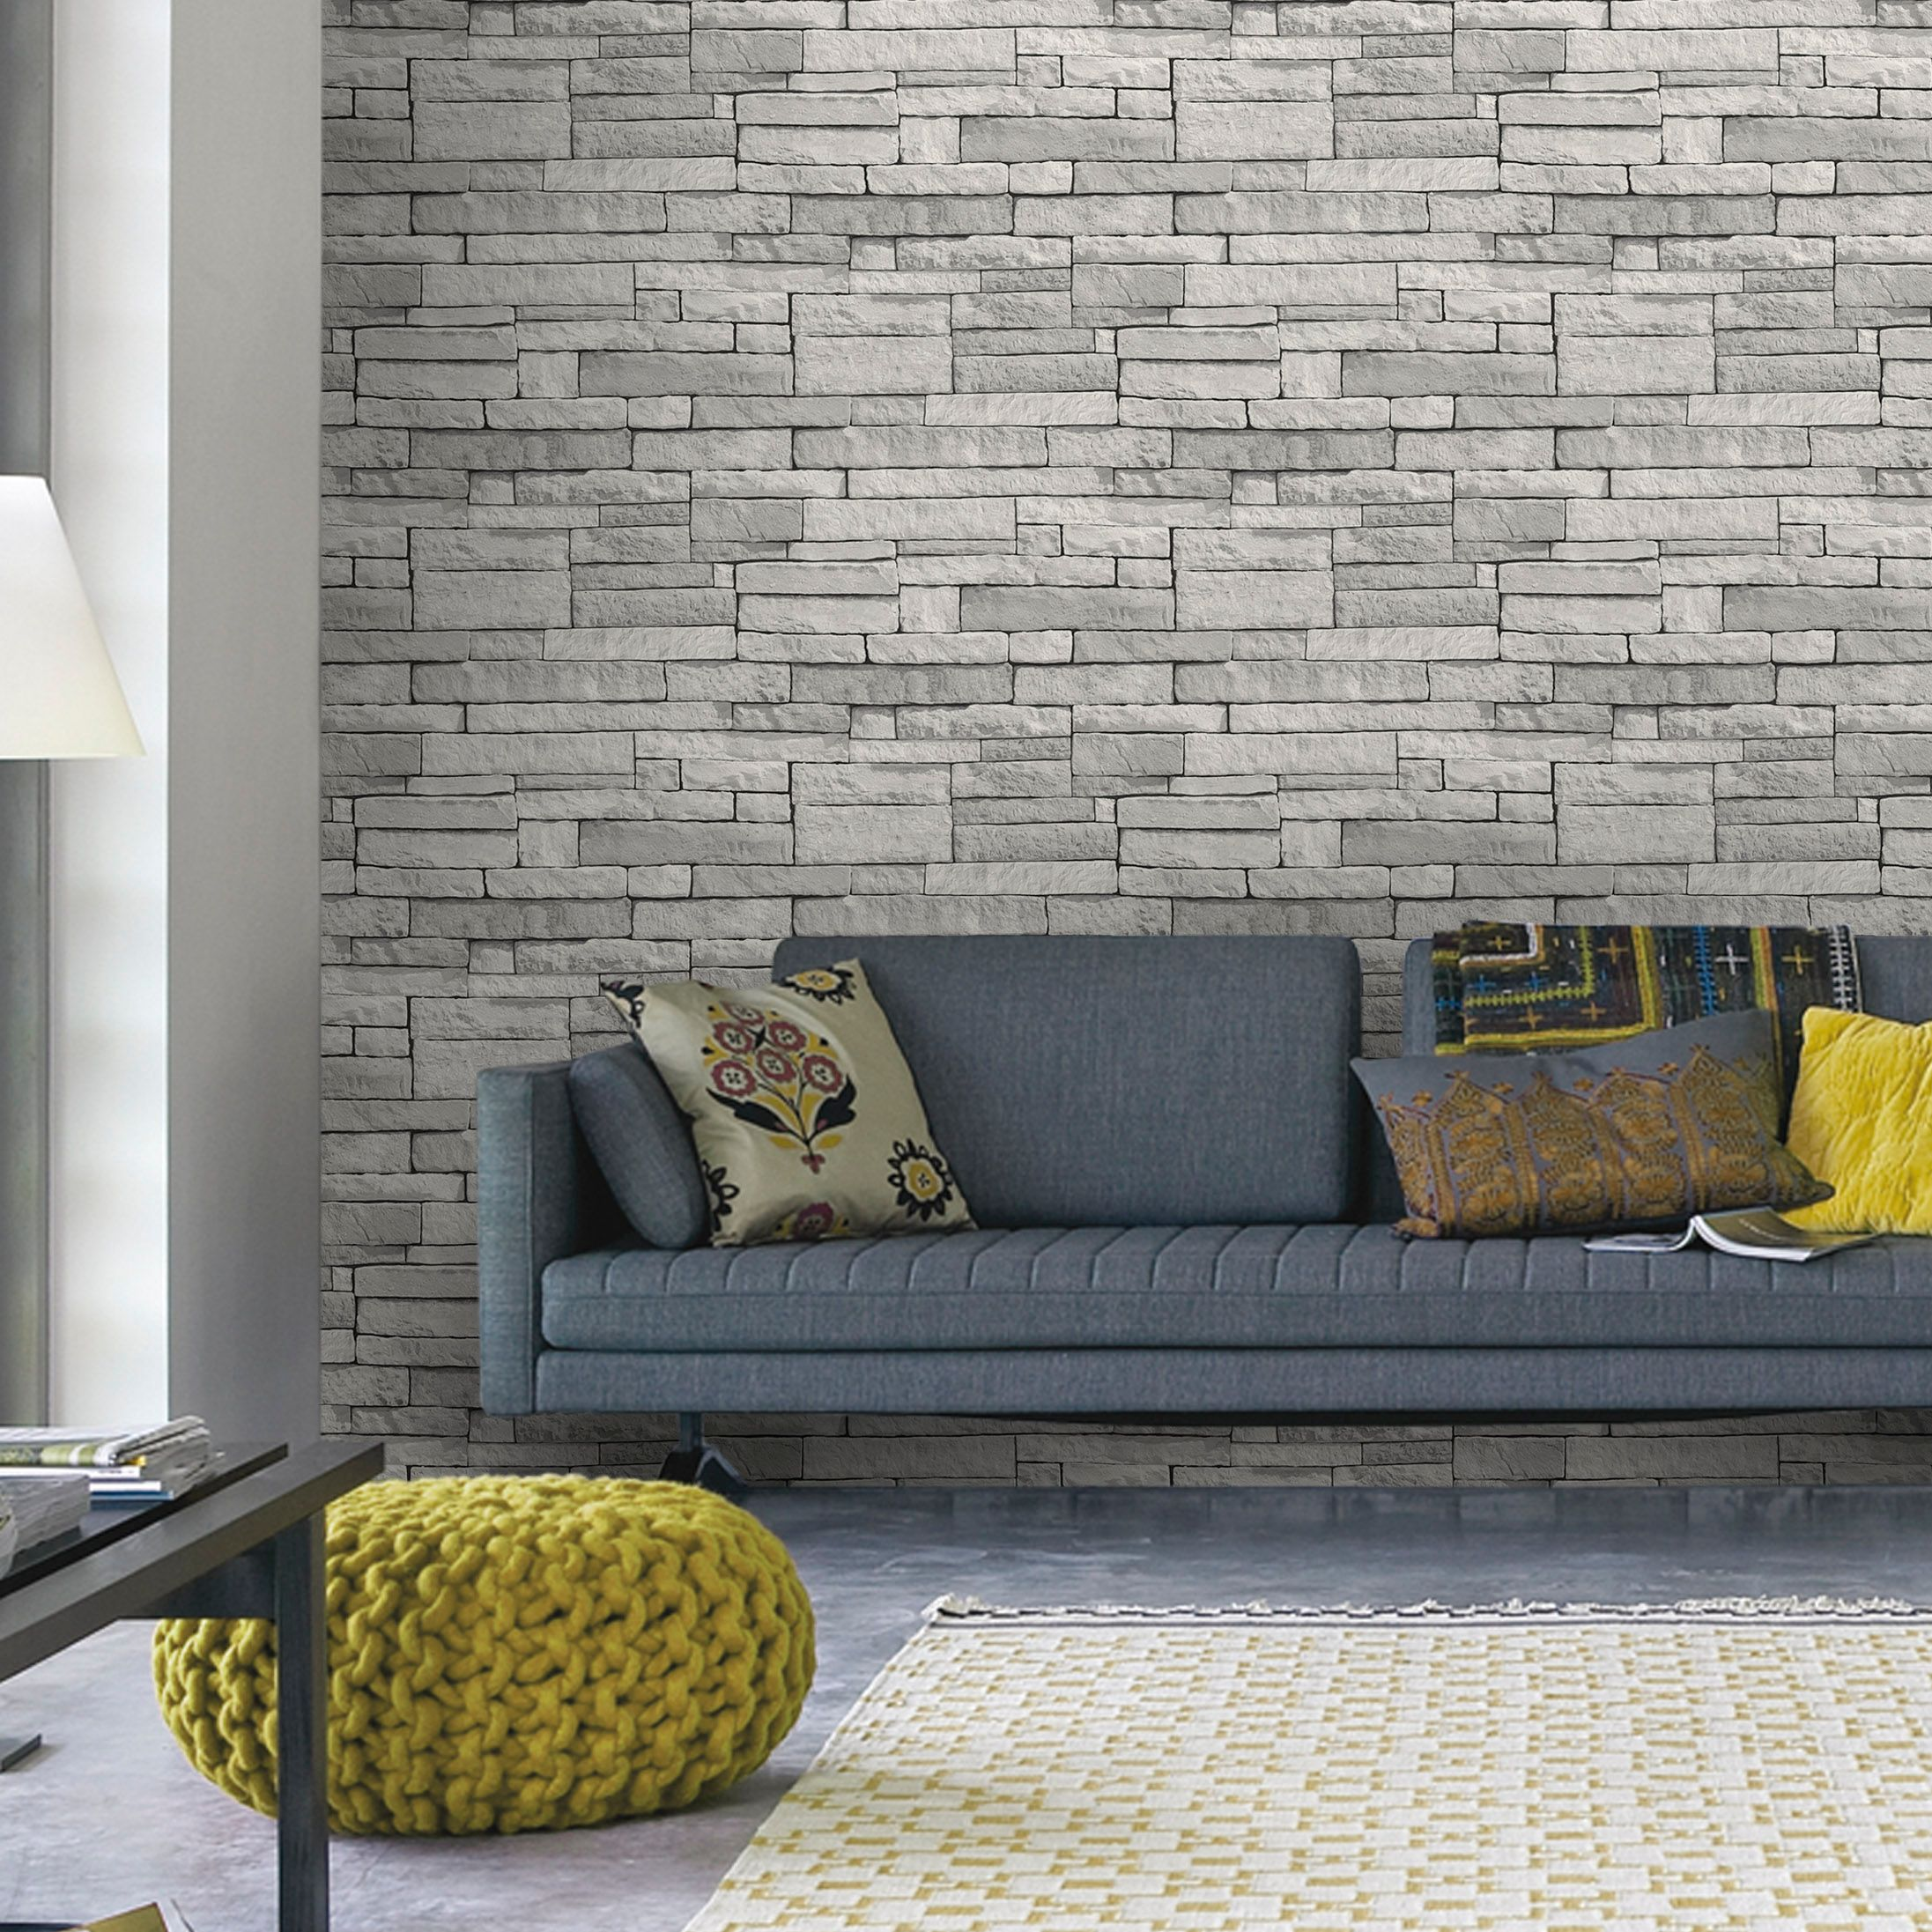 wallpaper ideas for living rooms room chairs seattle decorating brick tile stone